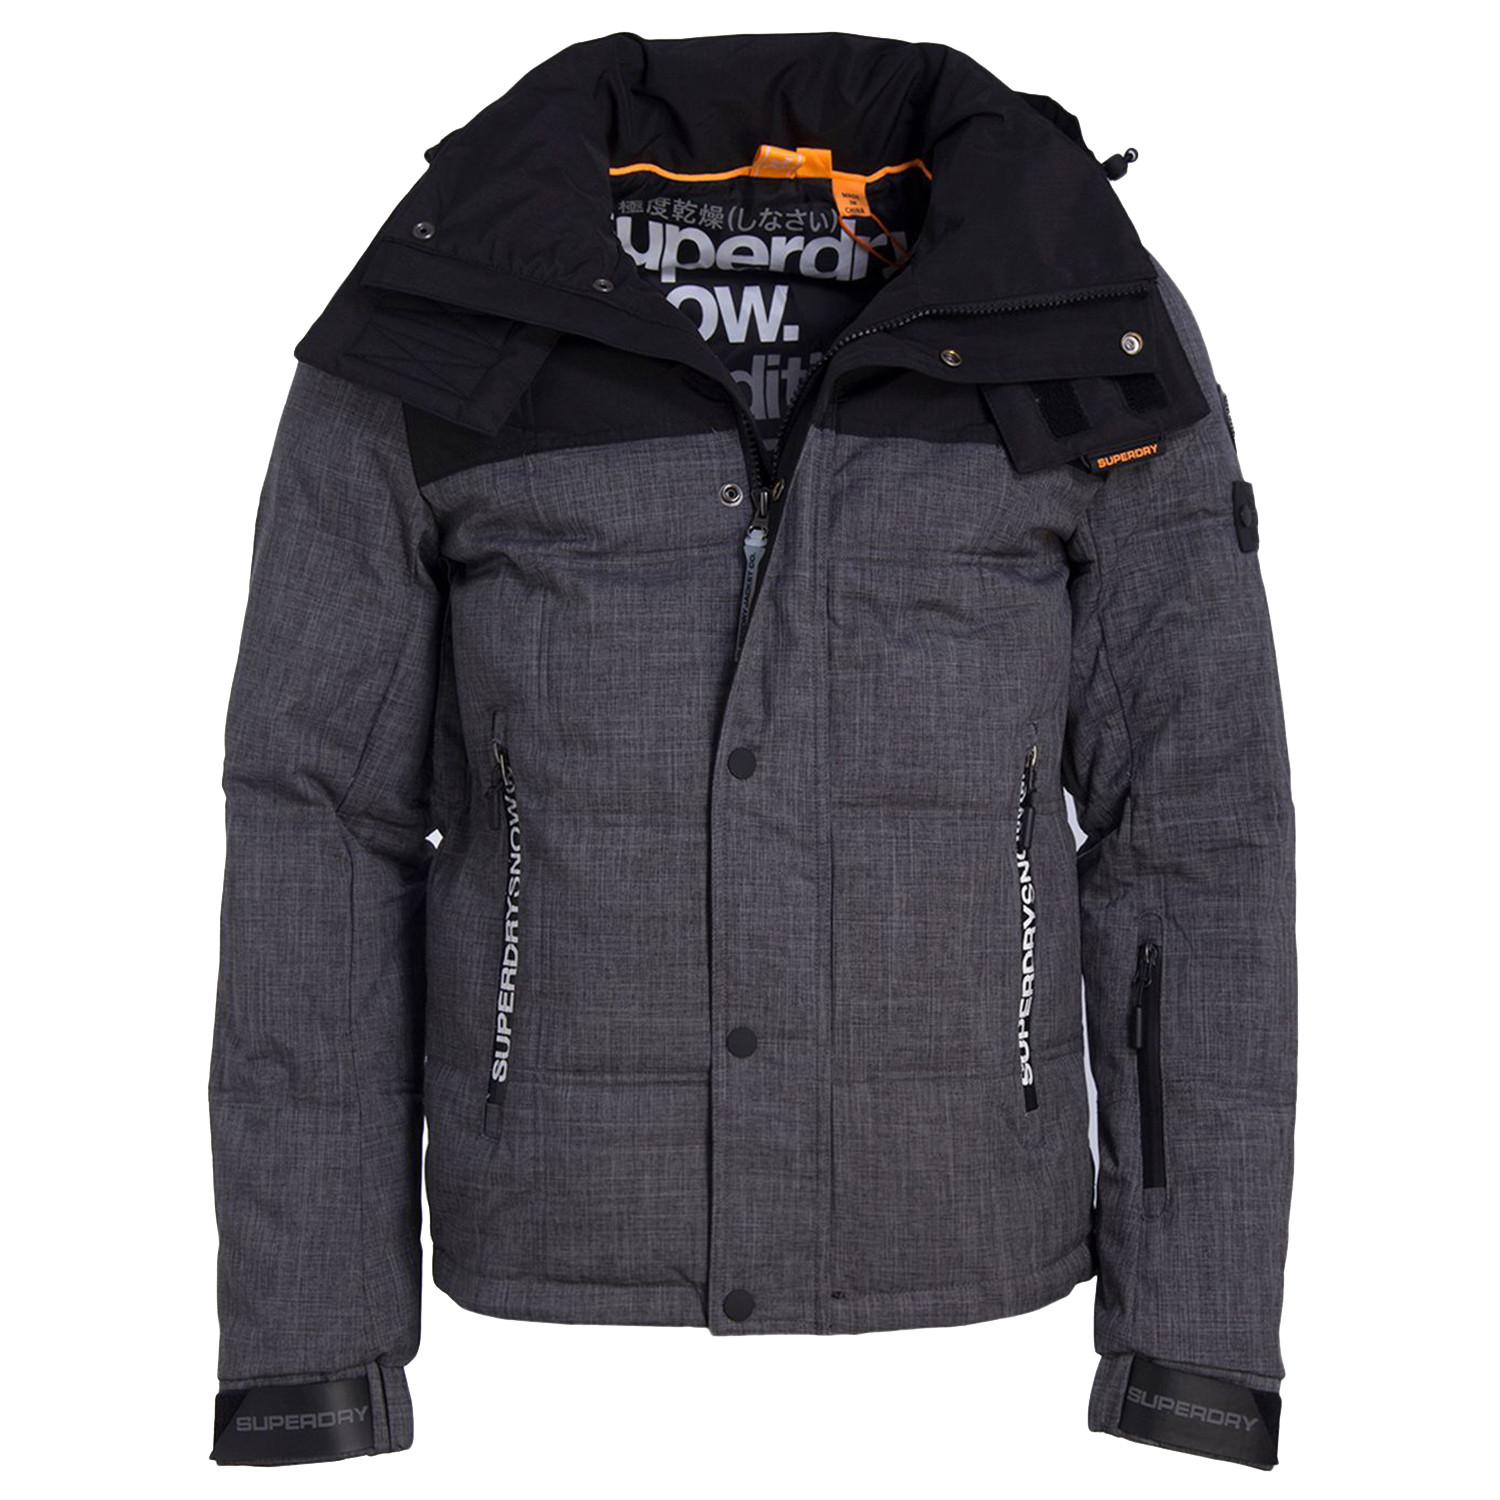 box snow blouson ski homme gris pas cher blousons ski et snowboard superdry discount. Black Bedroom Furniture Sets. Home Design Ideas